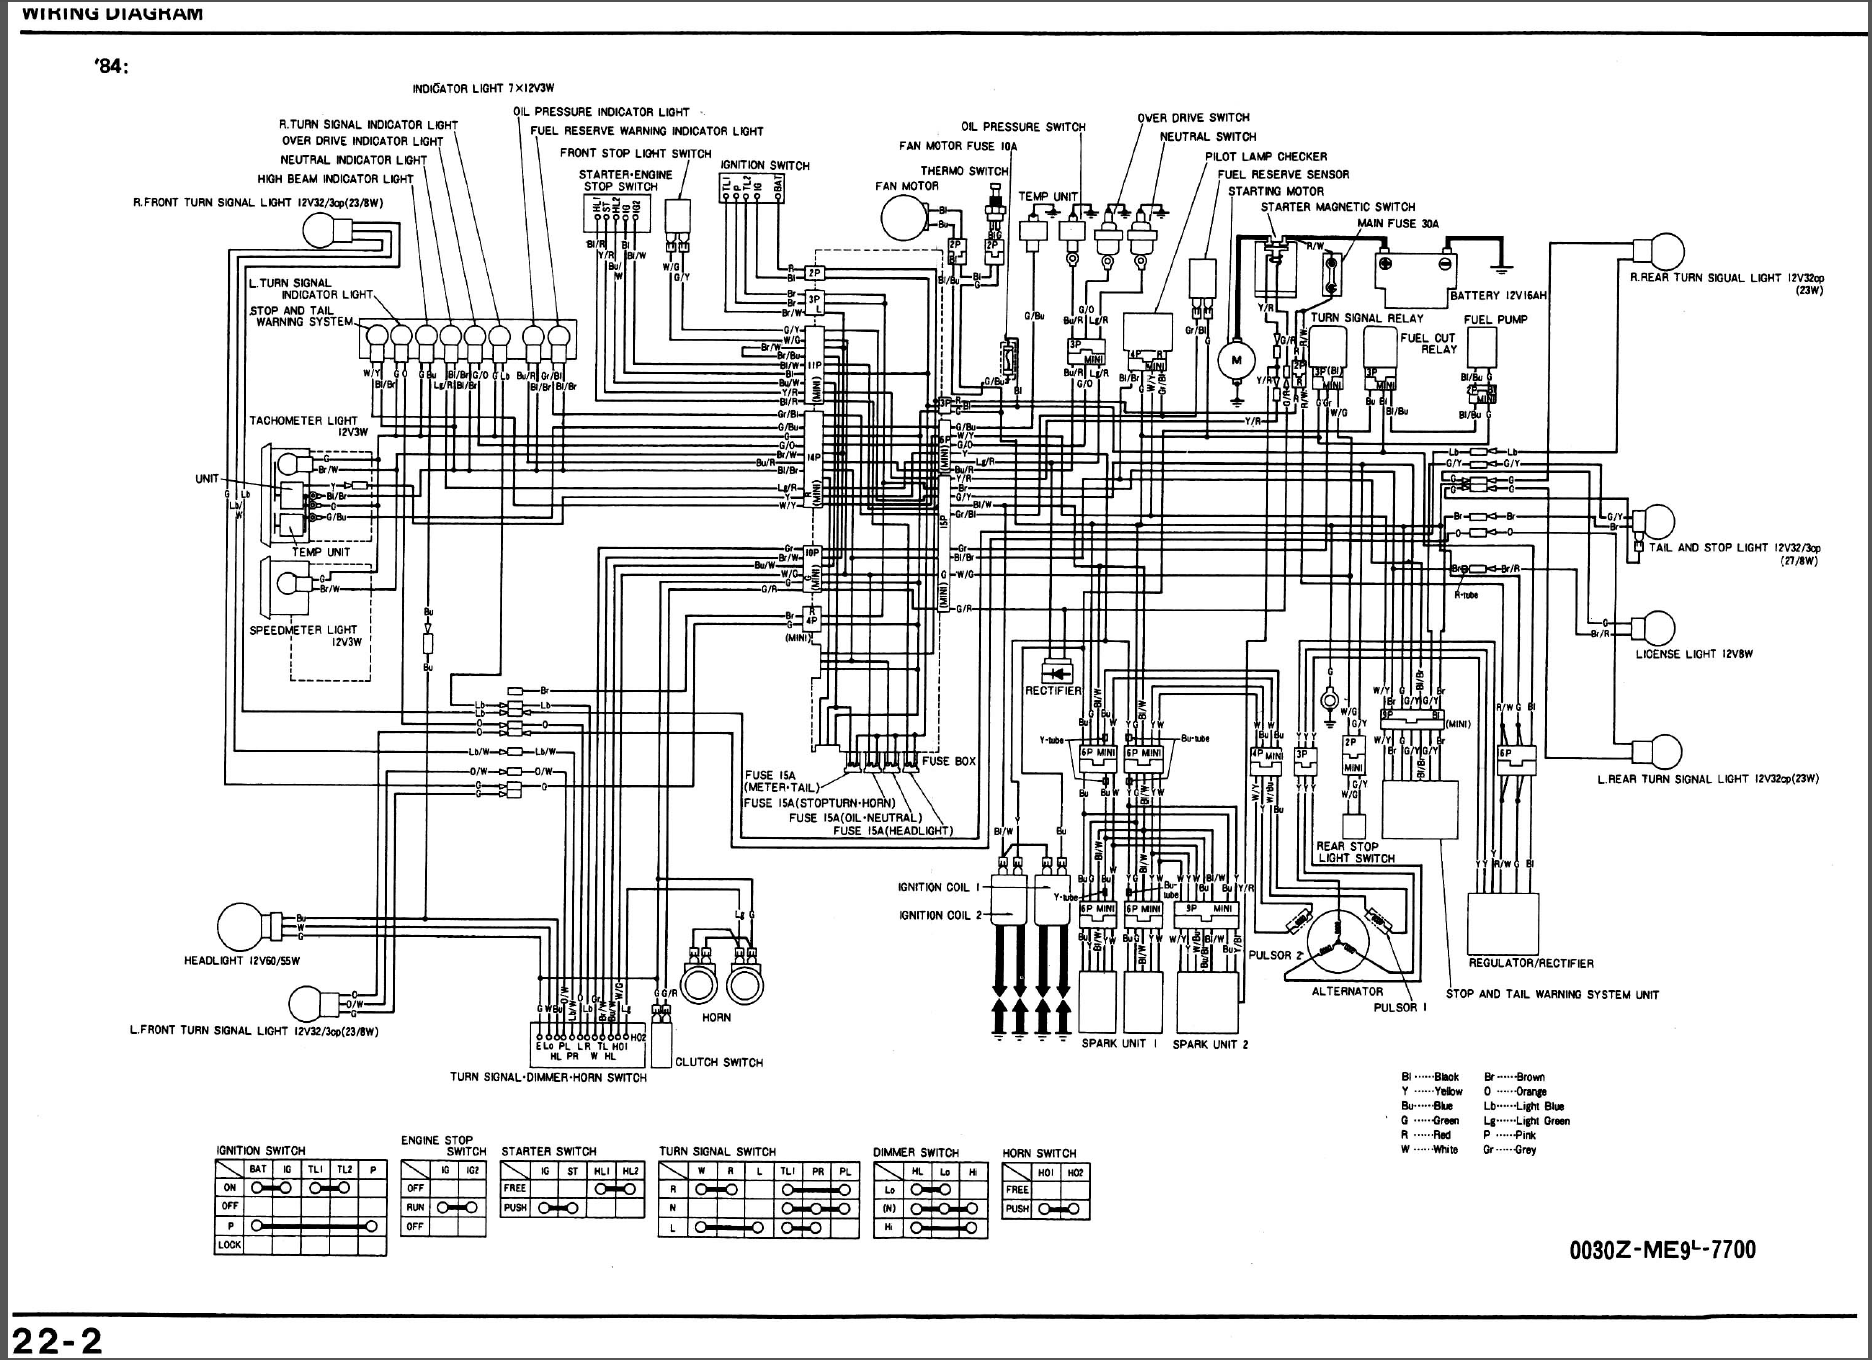 9265d1409799690 1984 honda shadow 700 wireing diagram b 1984 honda shadow 700 2004 honda shadow 600 wiring diagram at alyssarenee.co